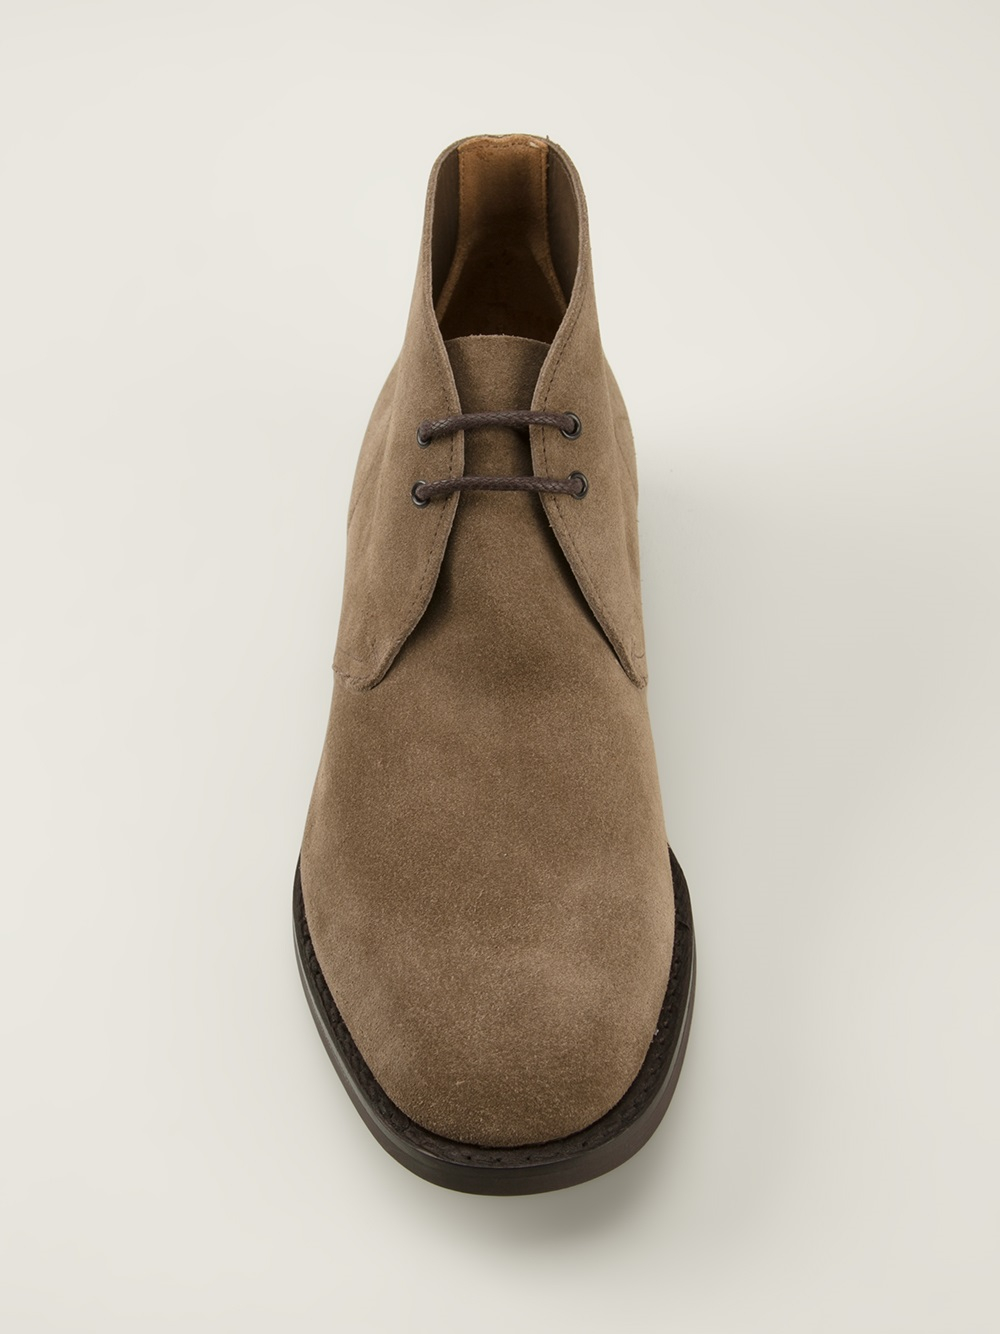 Desert Lyst Boots In Church's Men 'sahara' For Green C0qy1a5w